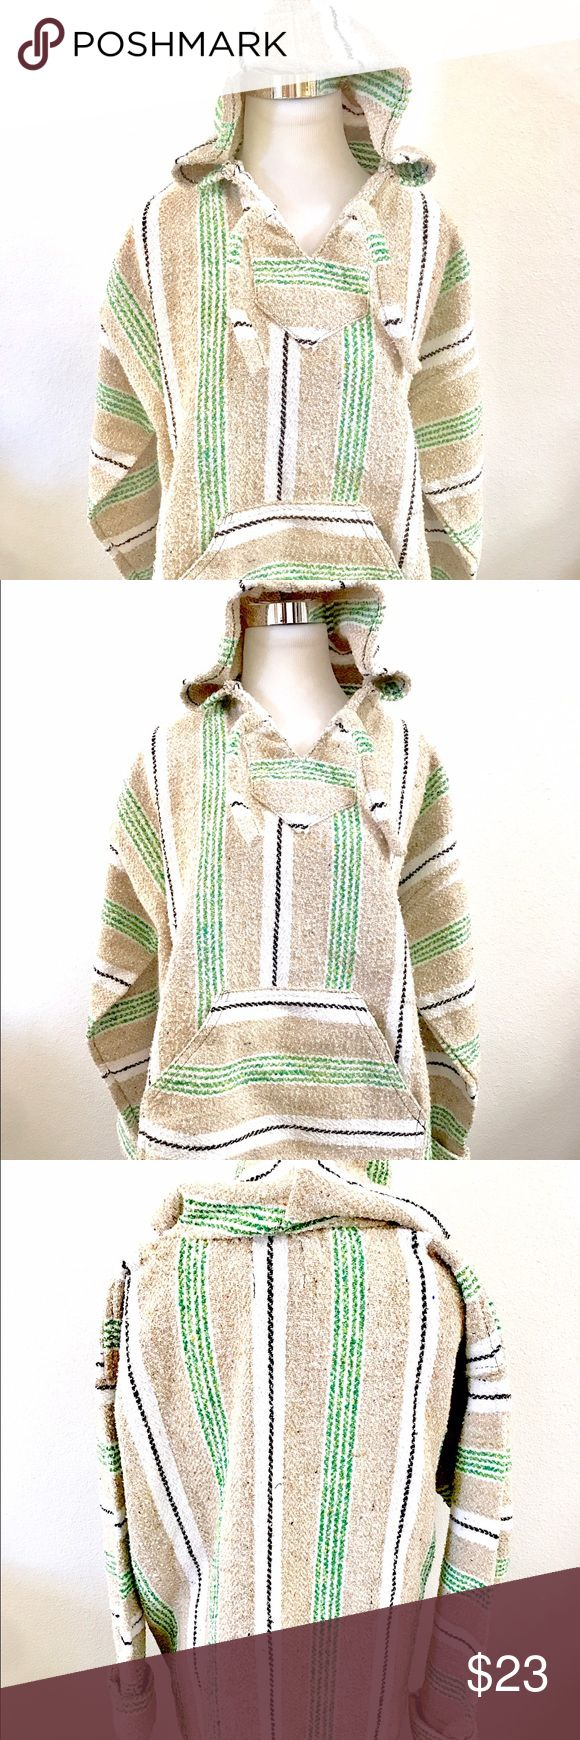 "Earth Ragz Baja poncho XL Beautiful comfy perfect for summer. Size XL for that cool over size look. In really nice preloved condition. 27"" in length and 24"" bust earth ragz Sweaters Shrugs & Ponchos"